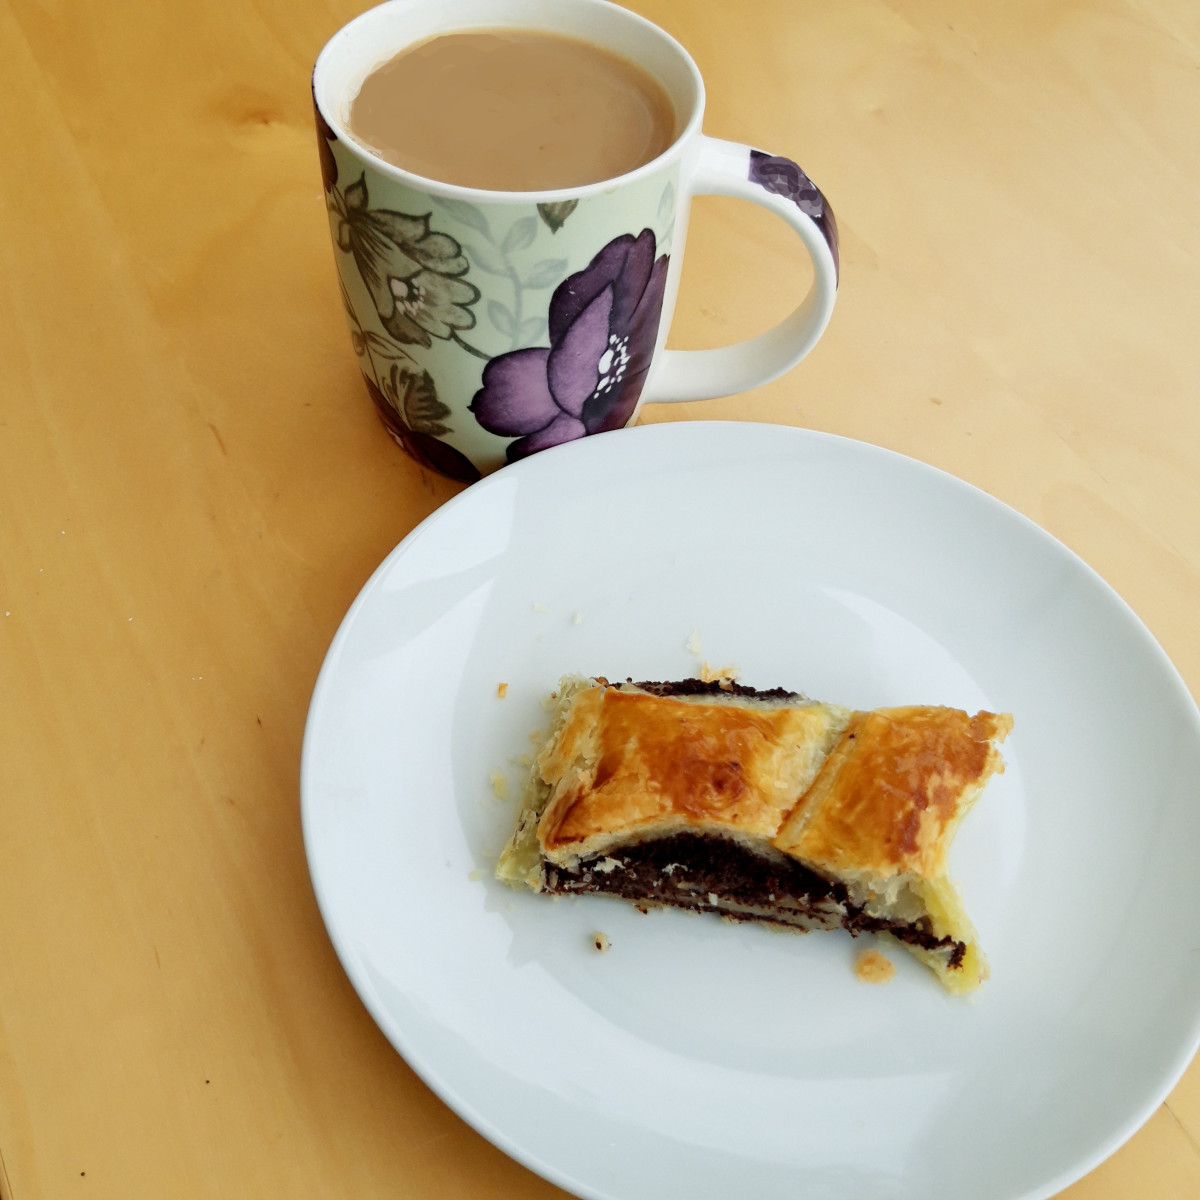 Enjoy your poppy seed roll with a cup of tea